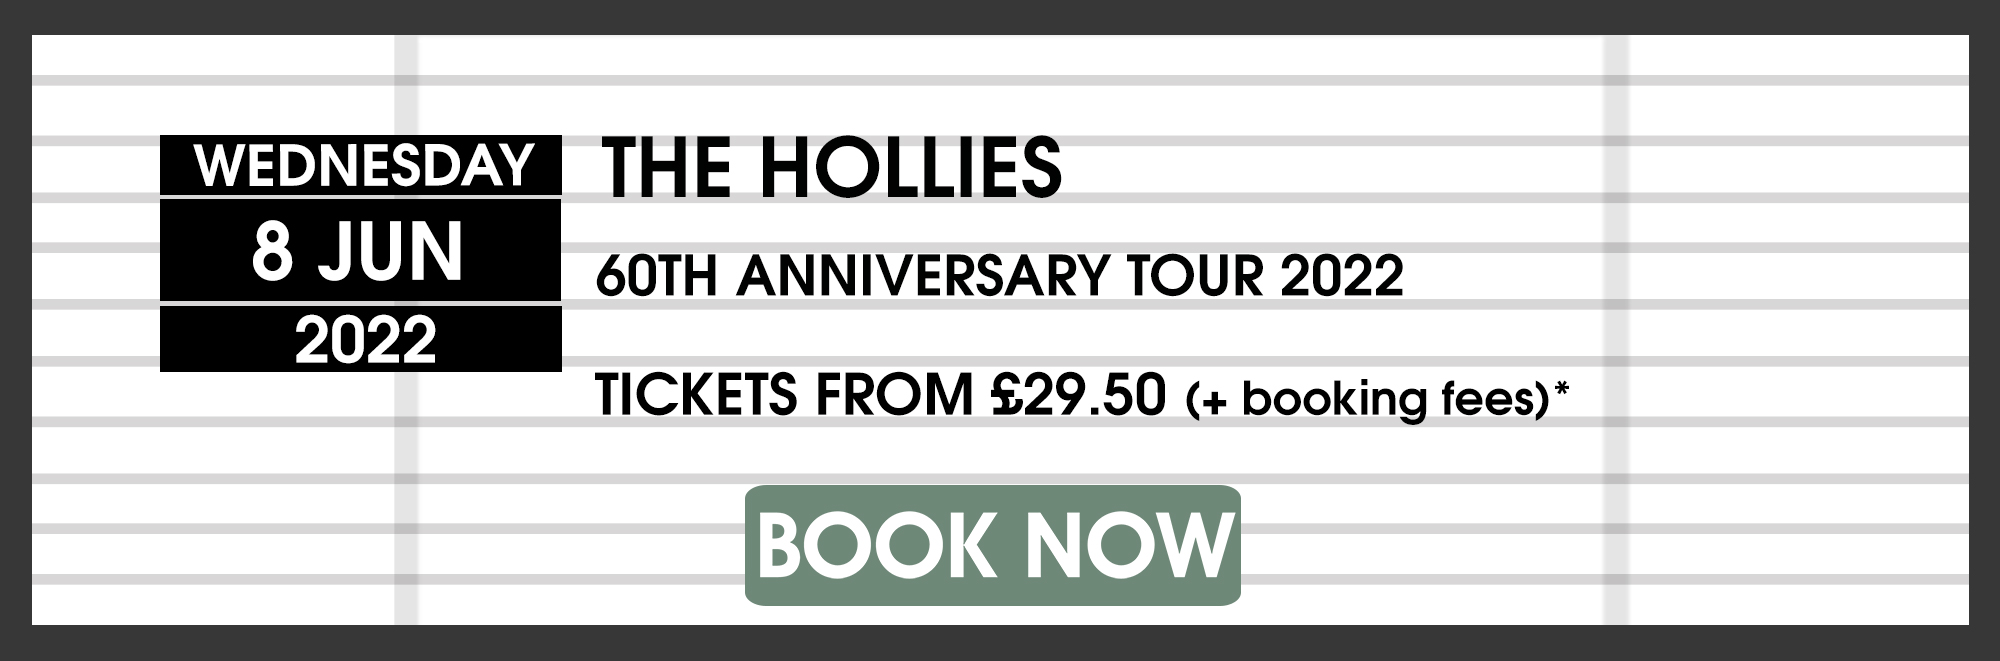 08.06.21 Hollies BOOK NOW